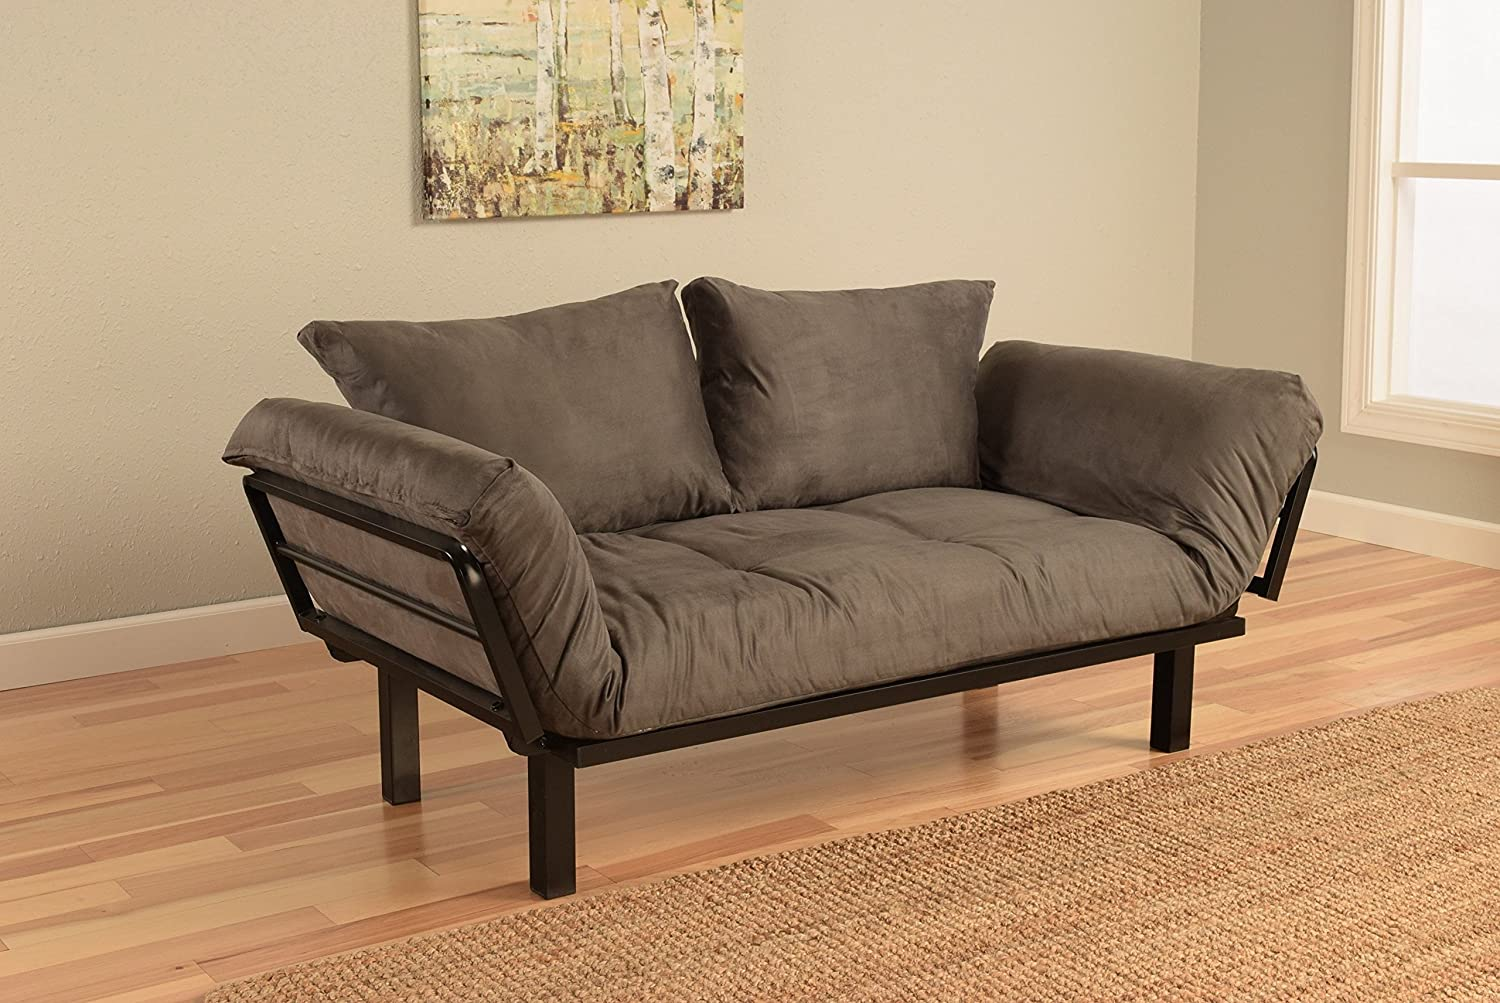 outlet matic large futon o java gallery futons p furniture discount carly bob s room living